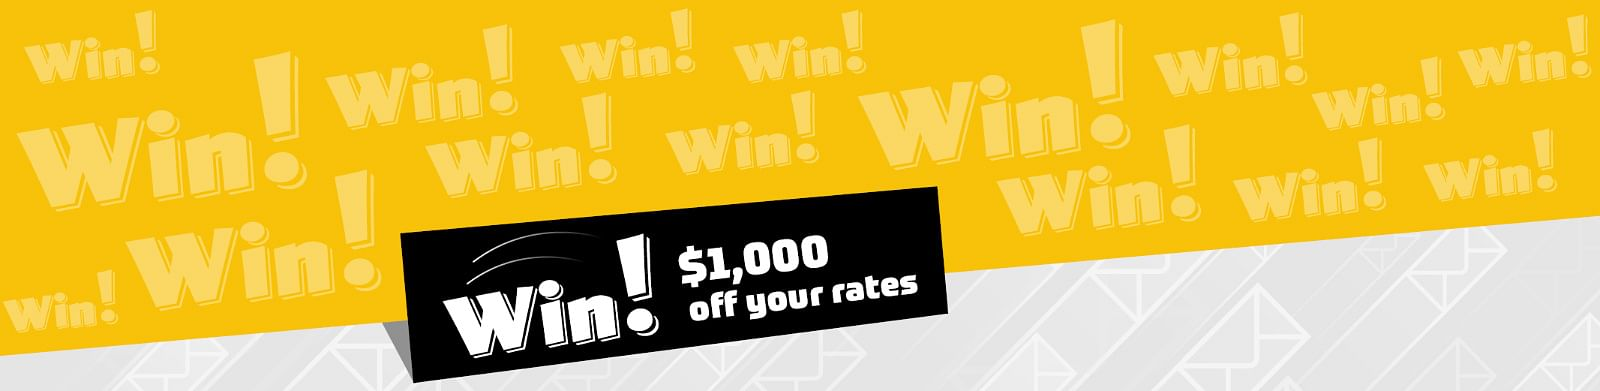 Win! $1,000 off your rates.